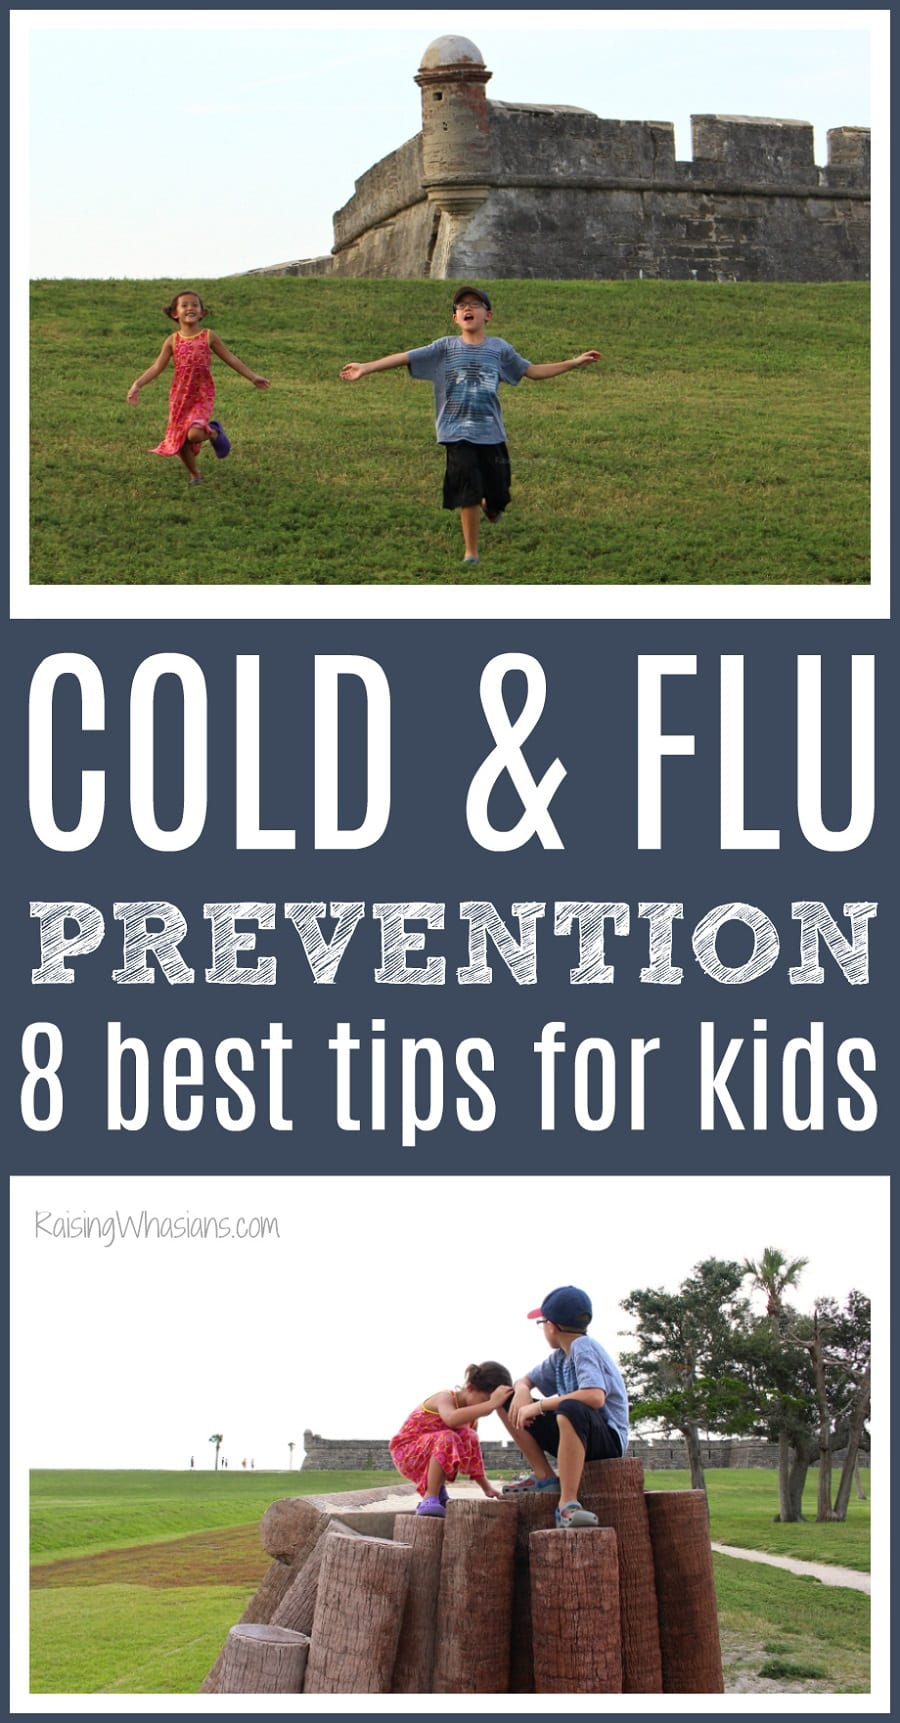 Cold and flu prevention for kids